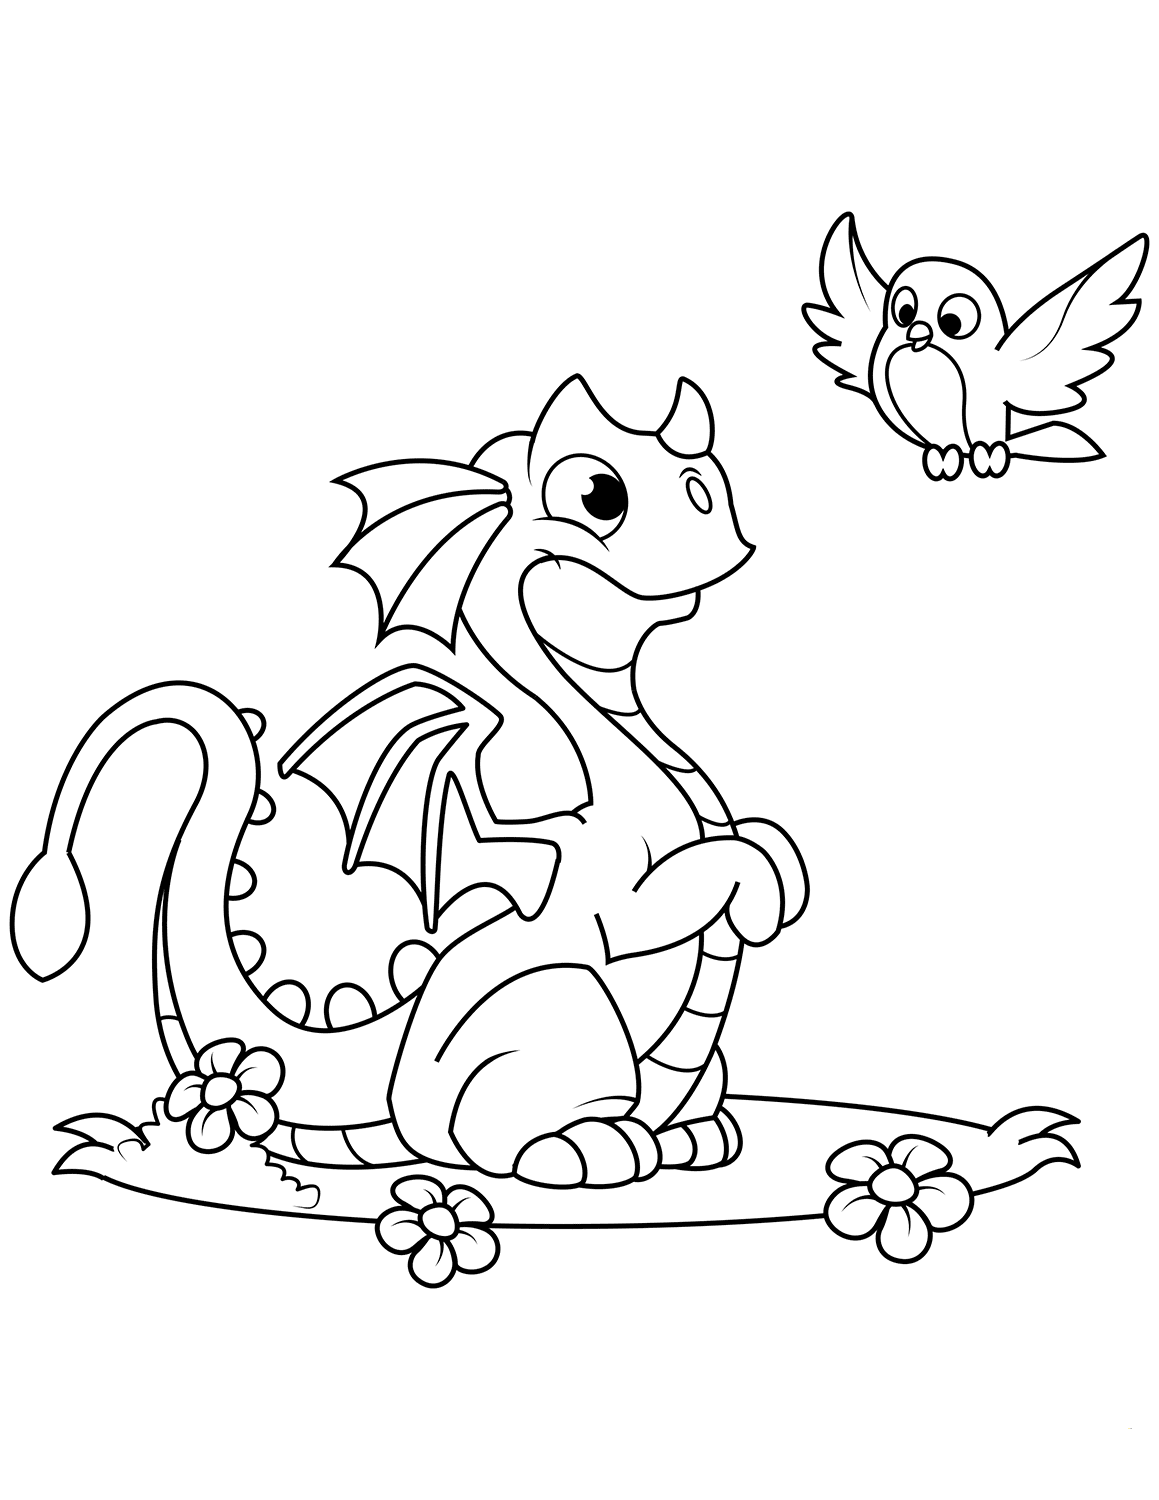 dragons coloring pages coloring pages female dragon coloring pages free and coloring dragons pages